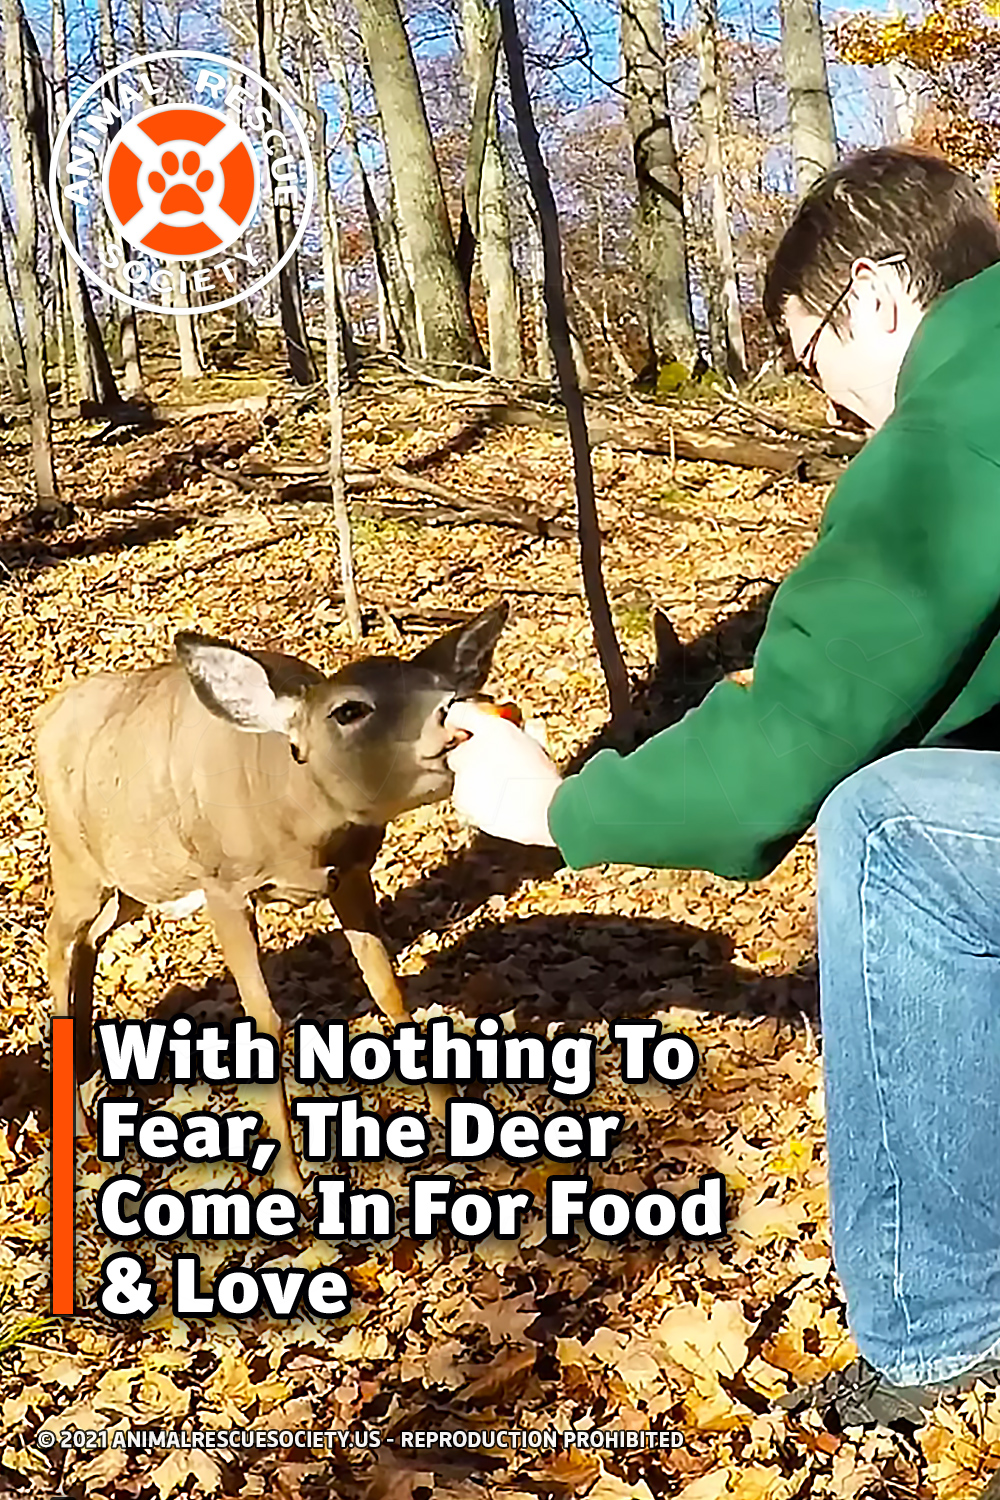 With Nothing To Fear, The Deer Come In For Food & Love